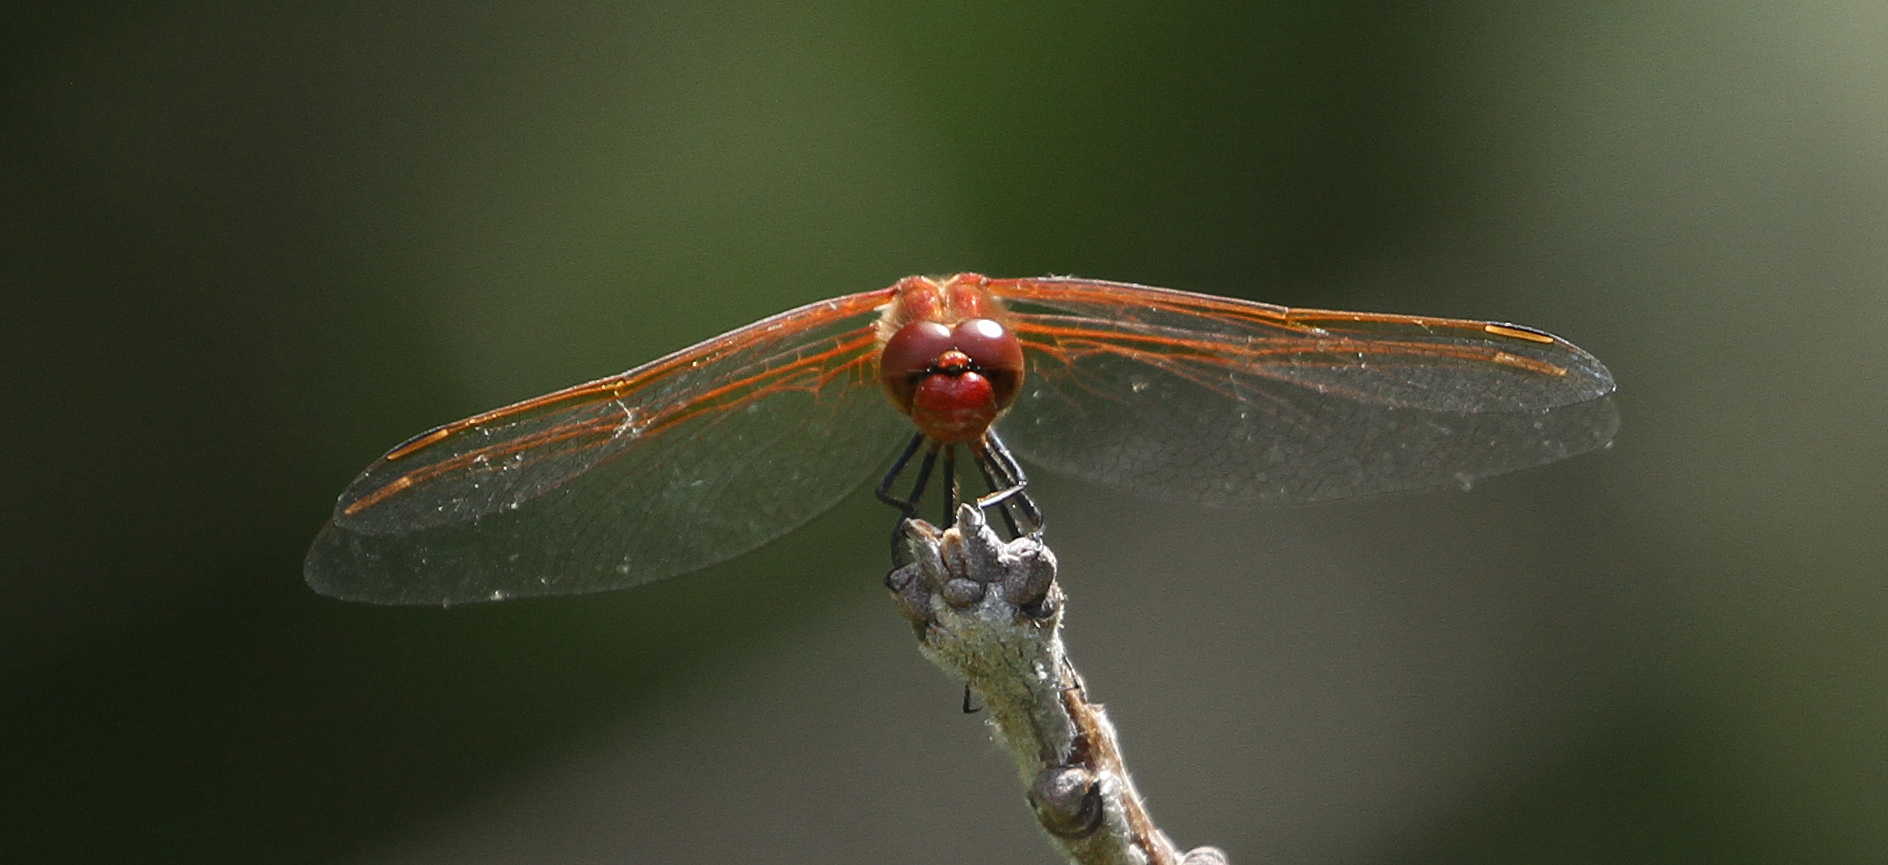 Red-veined Meadowhawk photo by Norm Barrett